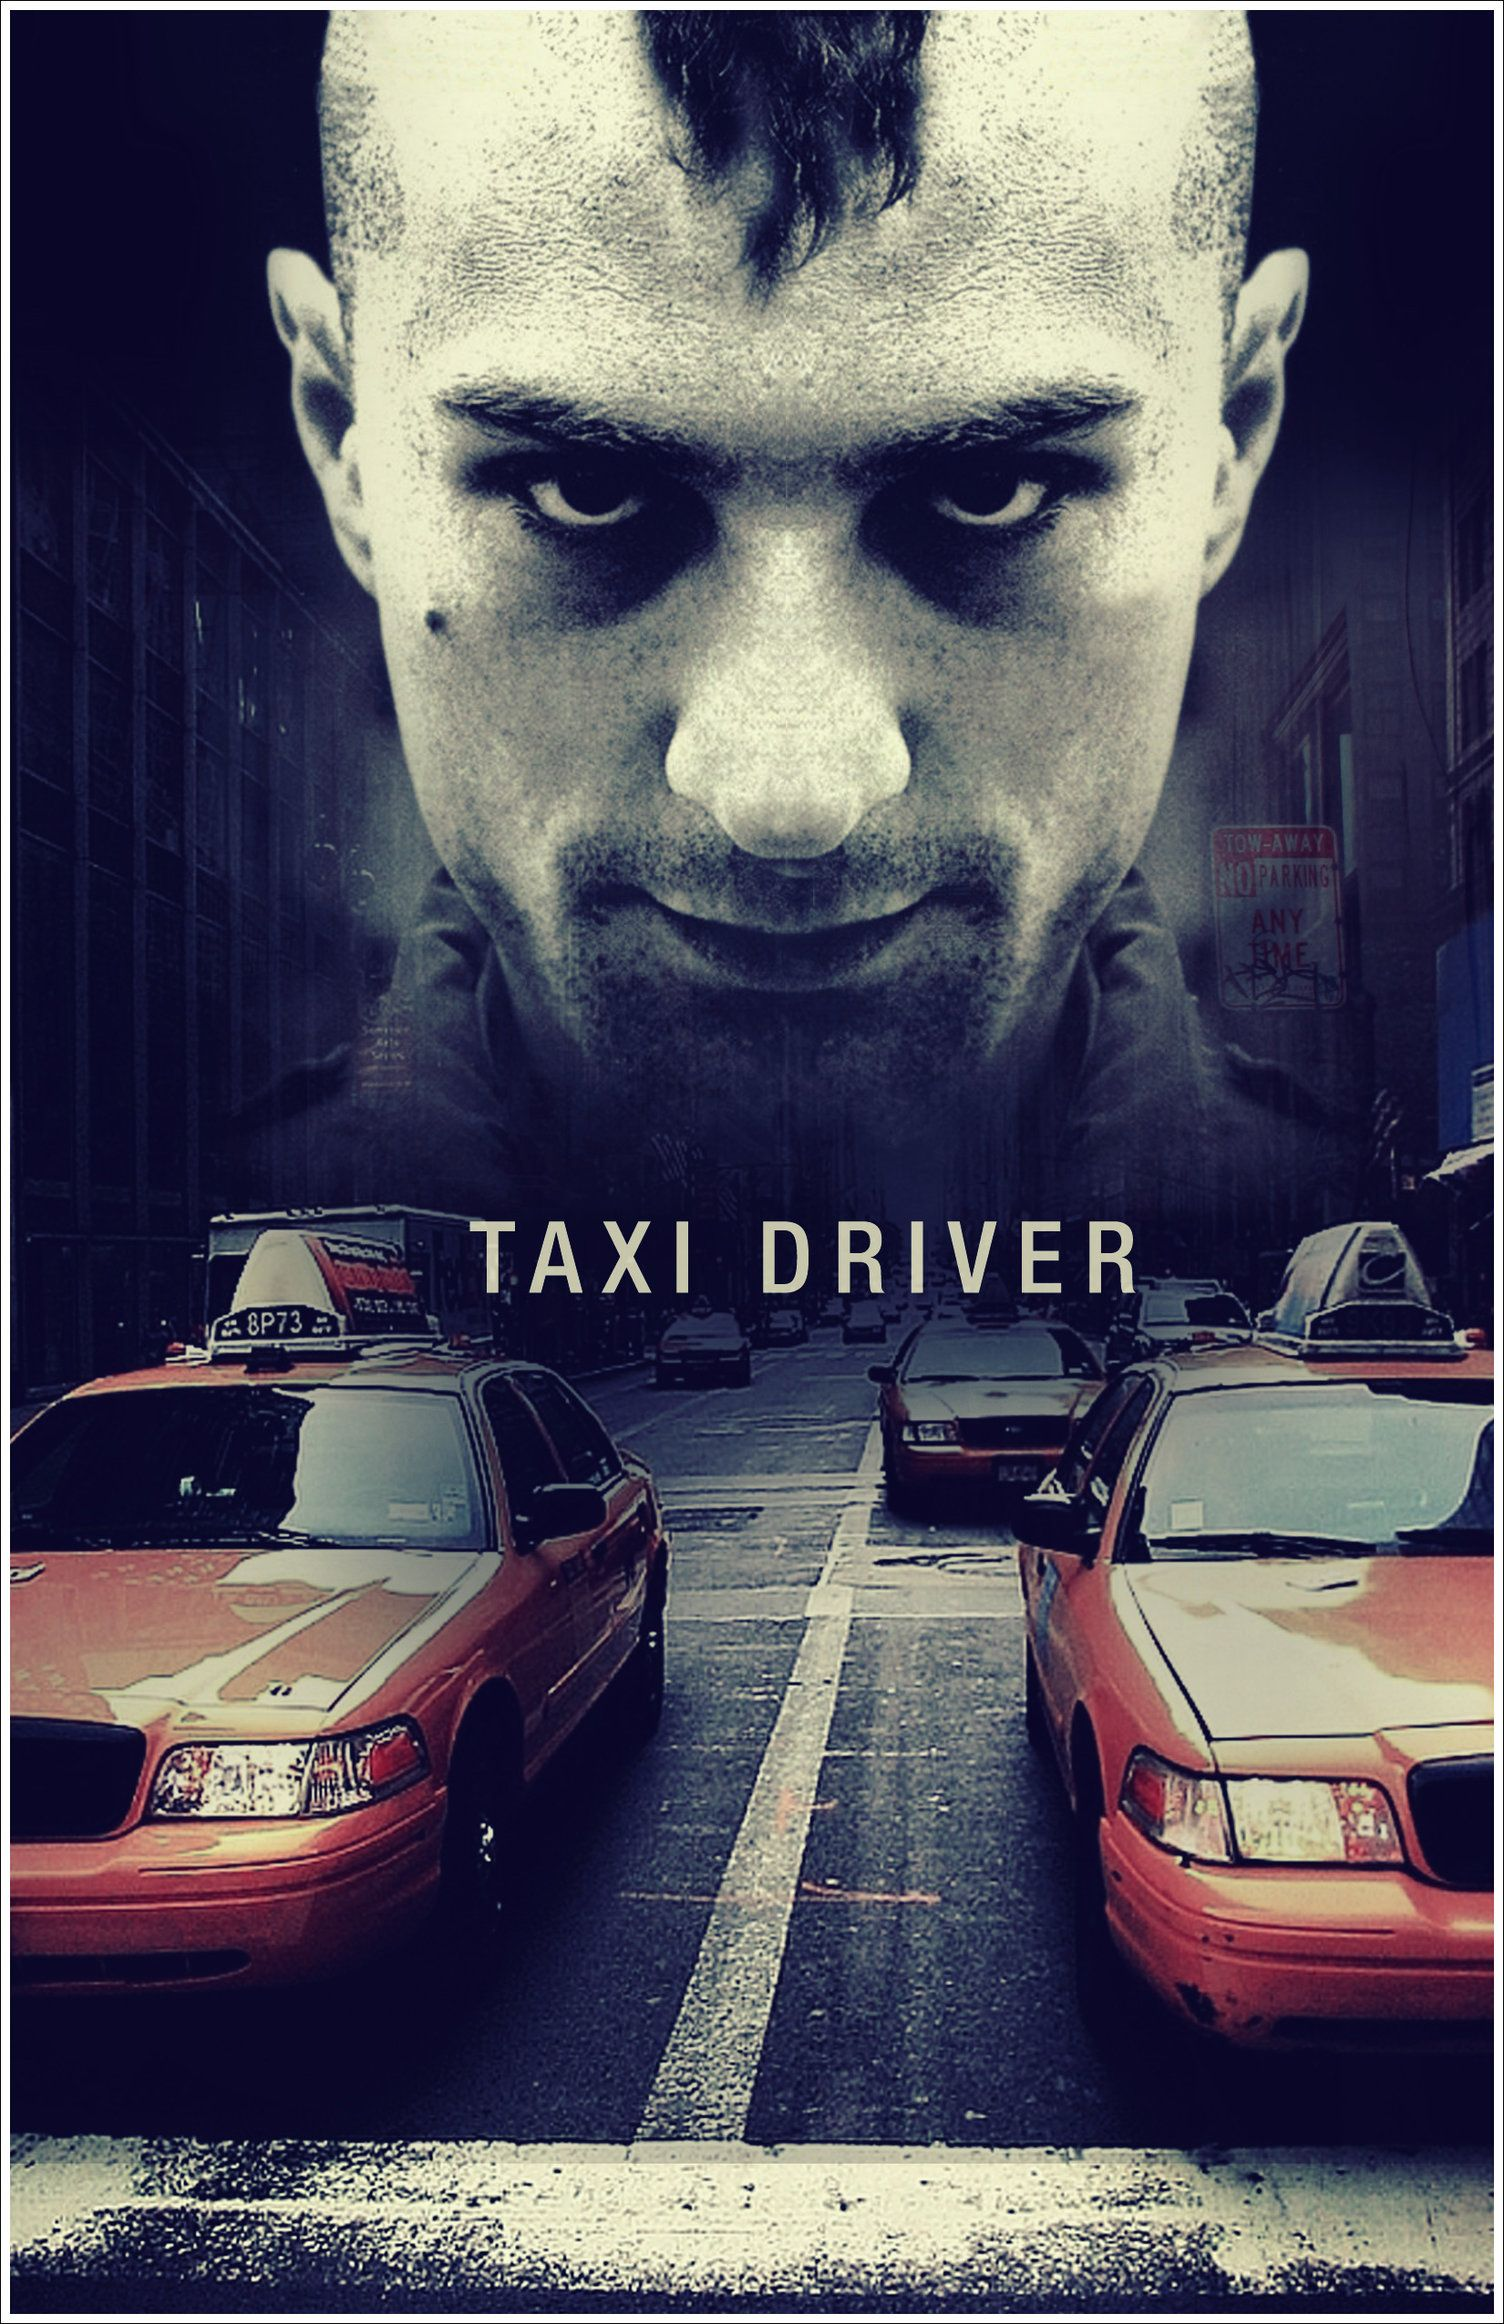 Always loved this image from the film taxi driver and i